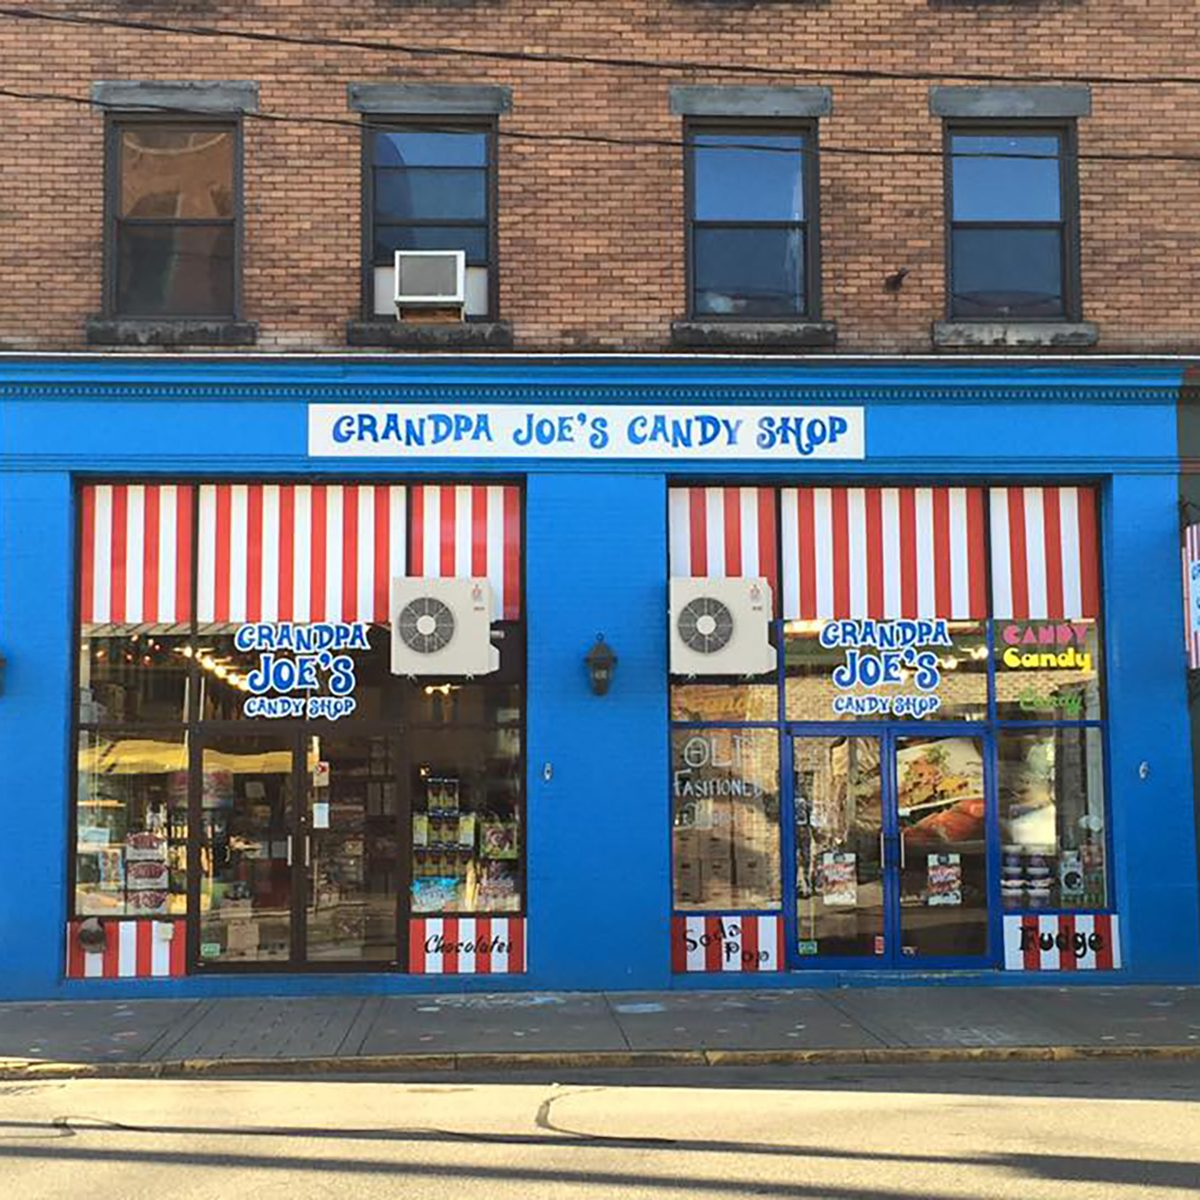 Grandpa Joe's Candy Shop, The best candy shop in every state